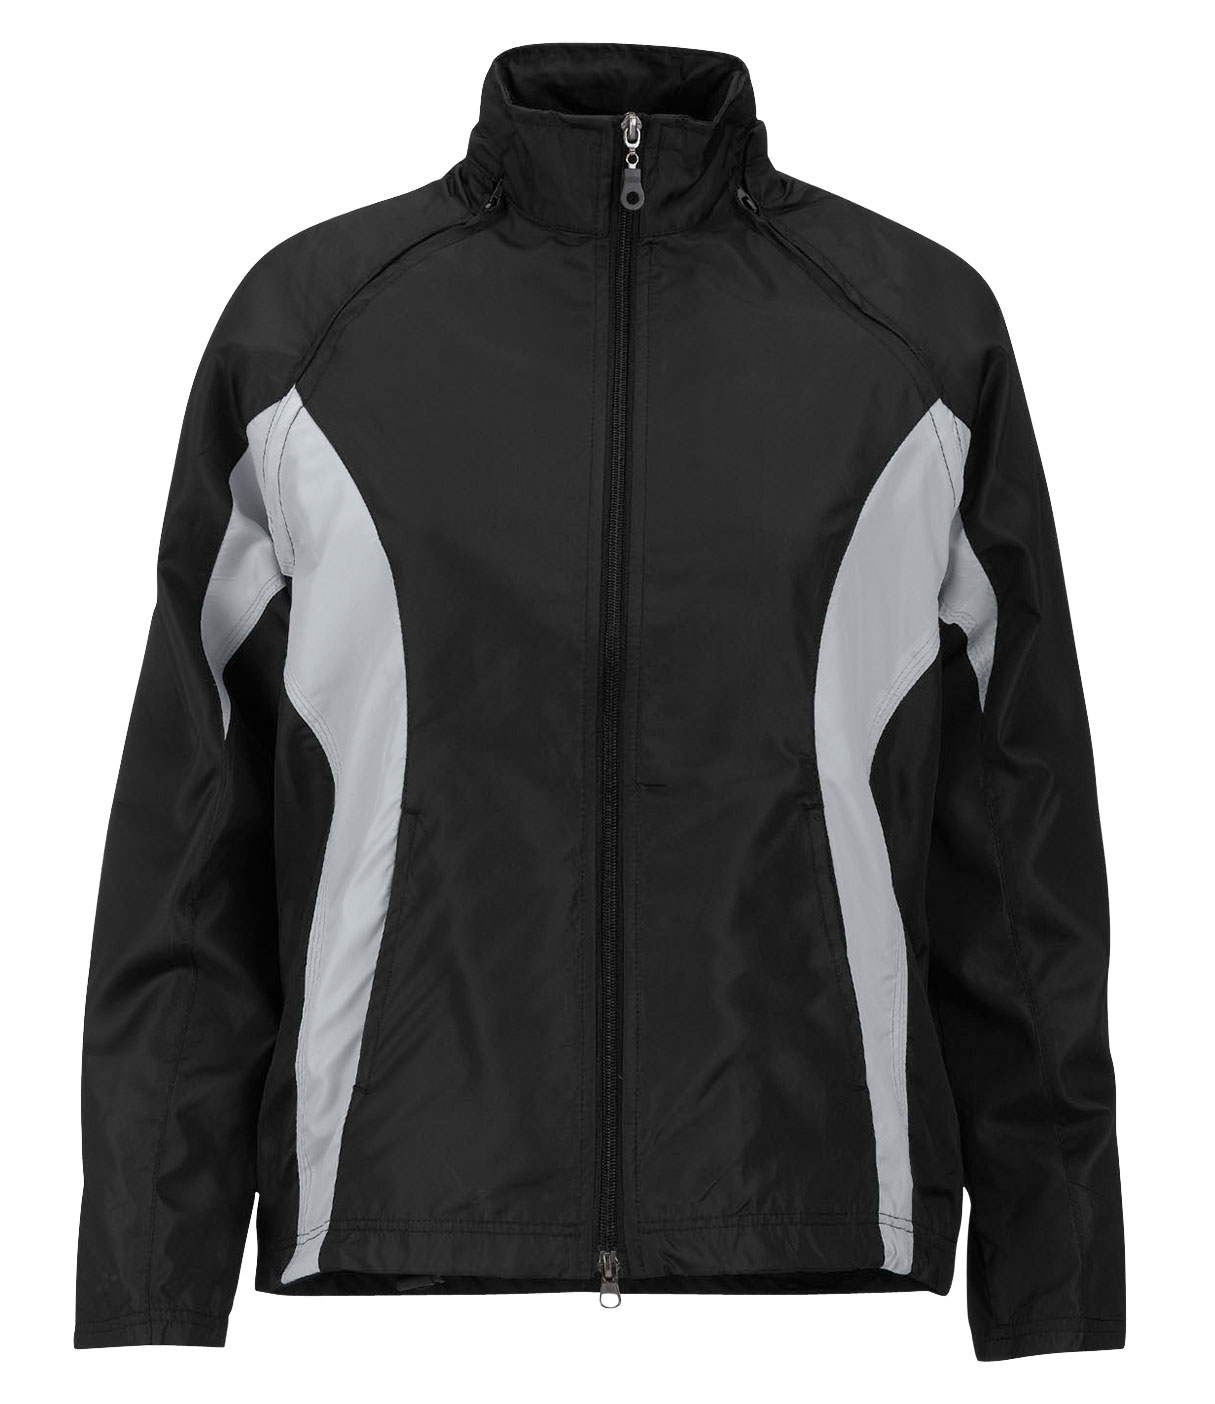 Womens Convertible Wind-Jacket